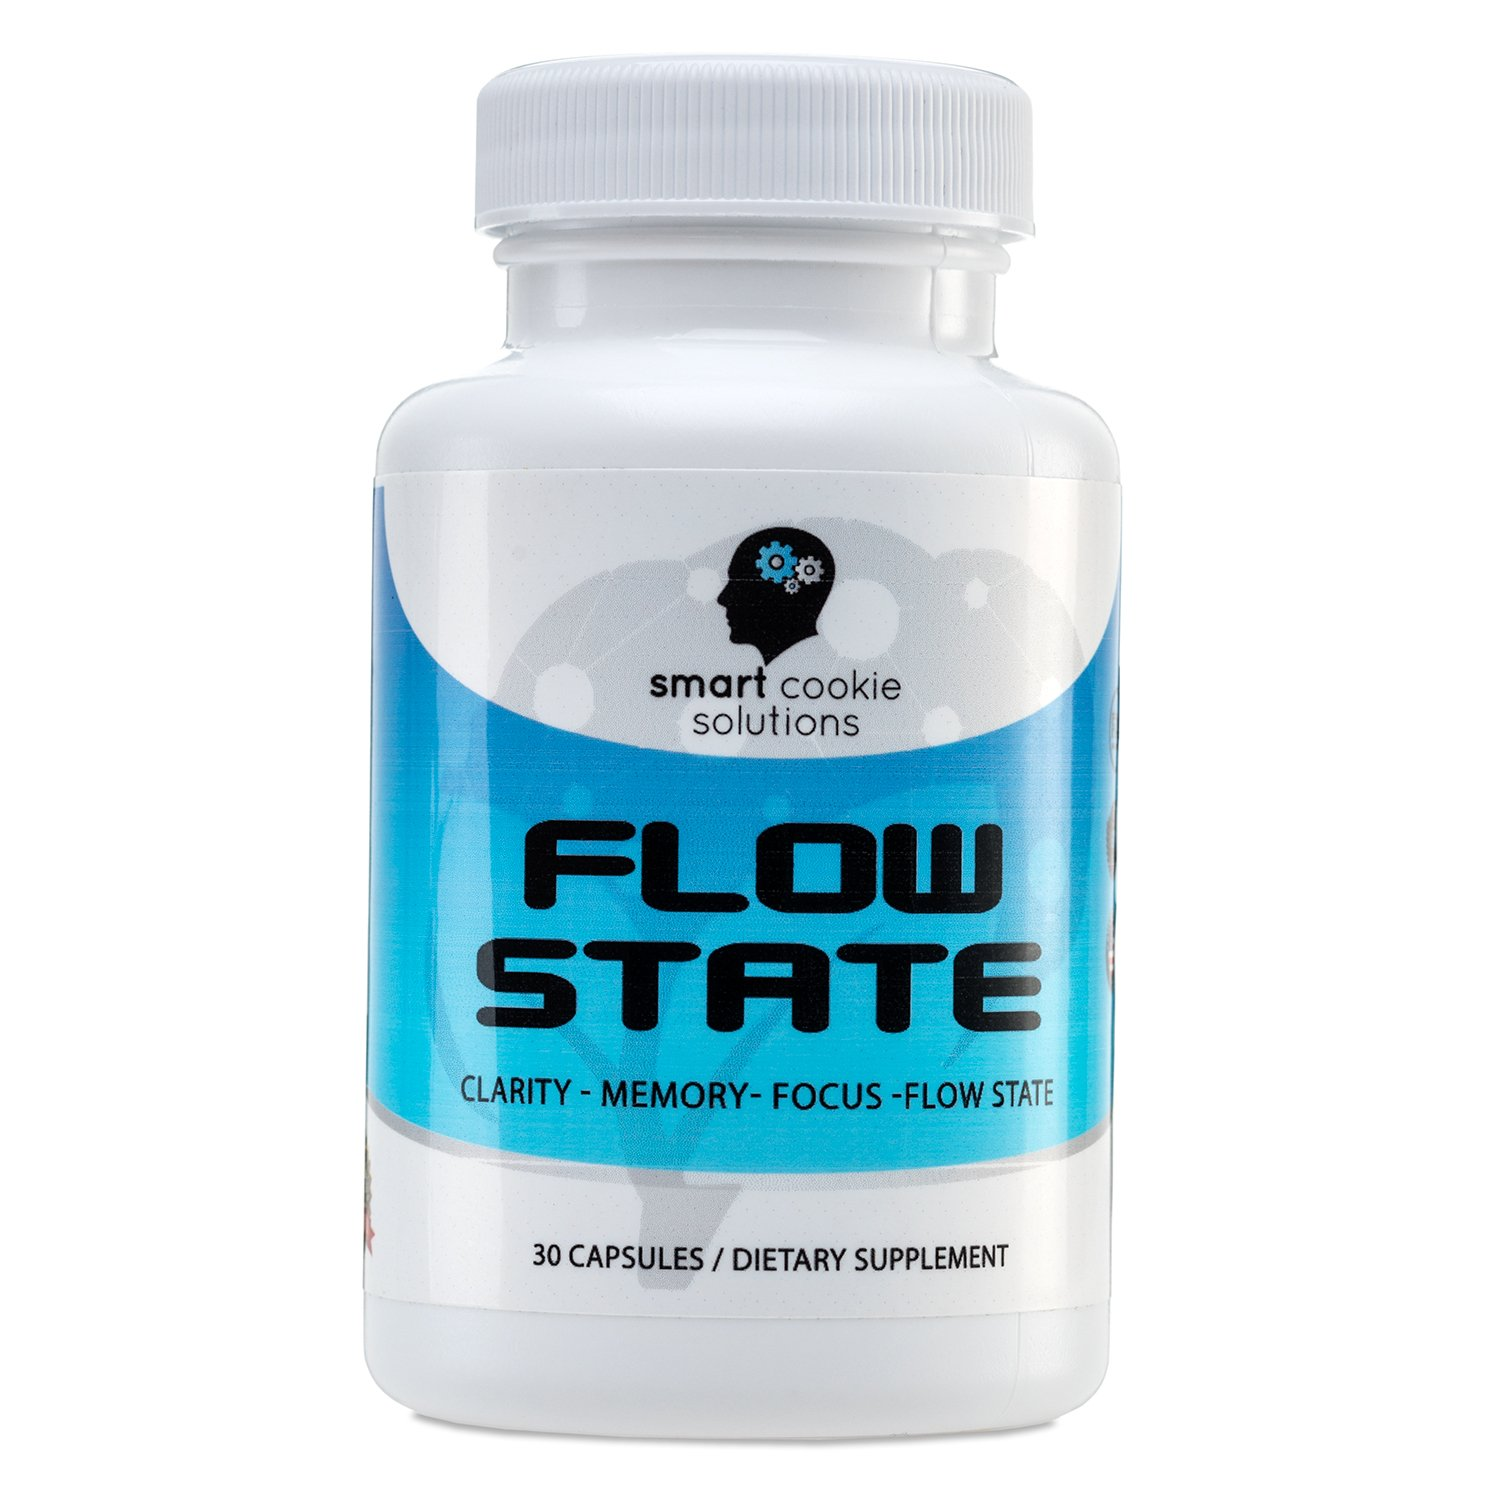 Flow State - Brain Support Supplement for Memory, Focus, Clarity and Flow State